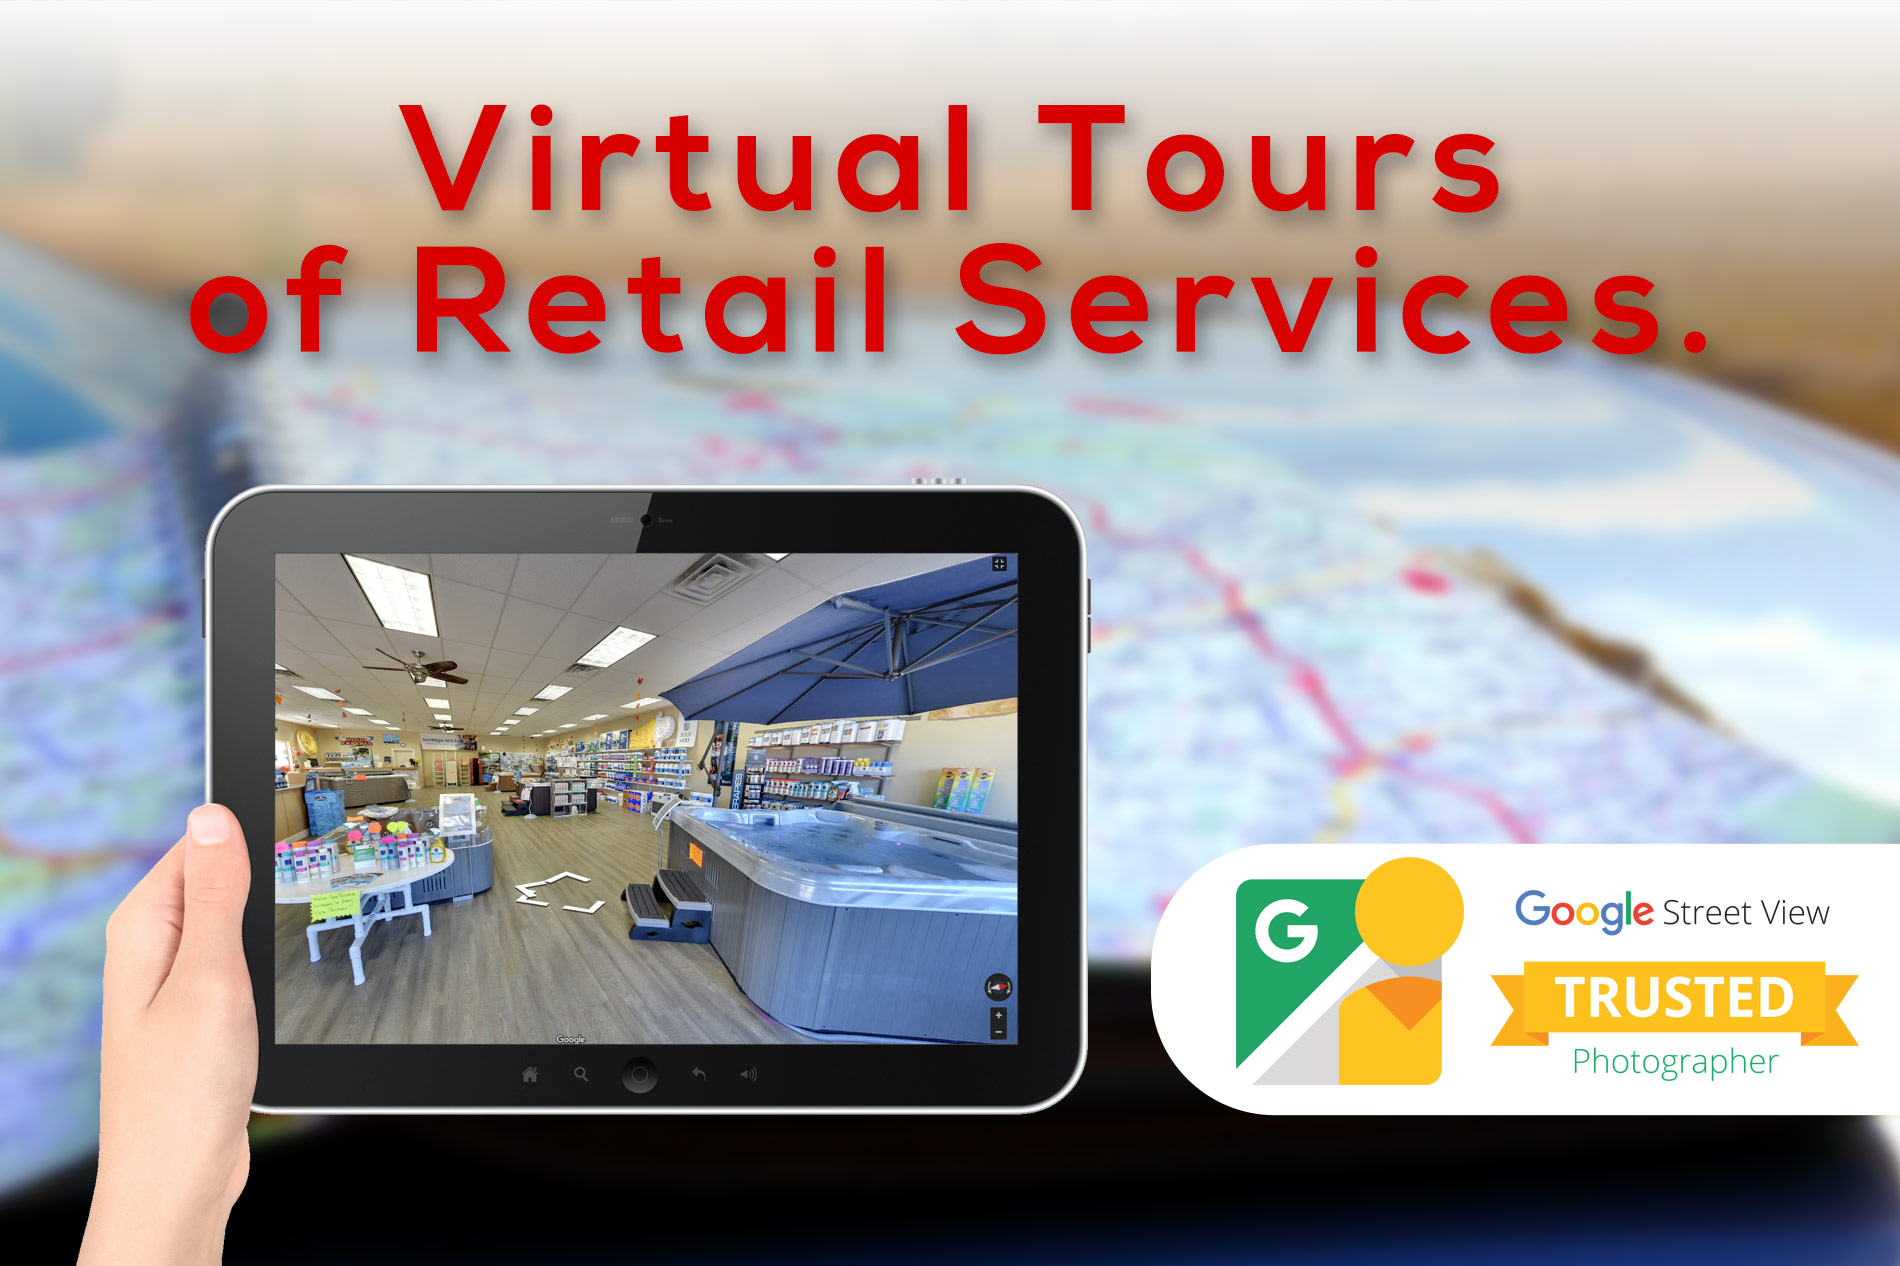 Virtual-Tours-of-Retail-Services Services - Make it Active, LLC